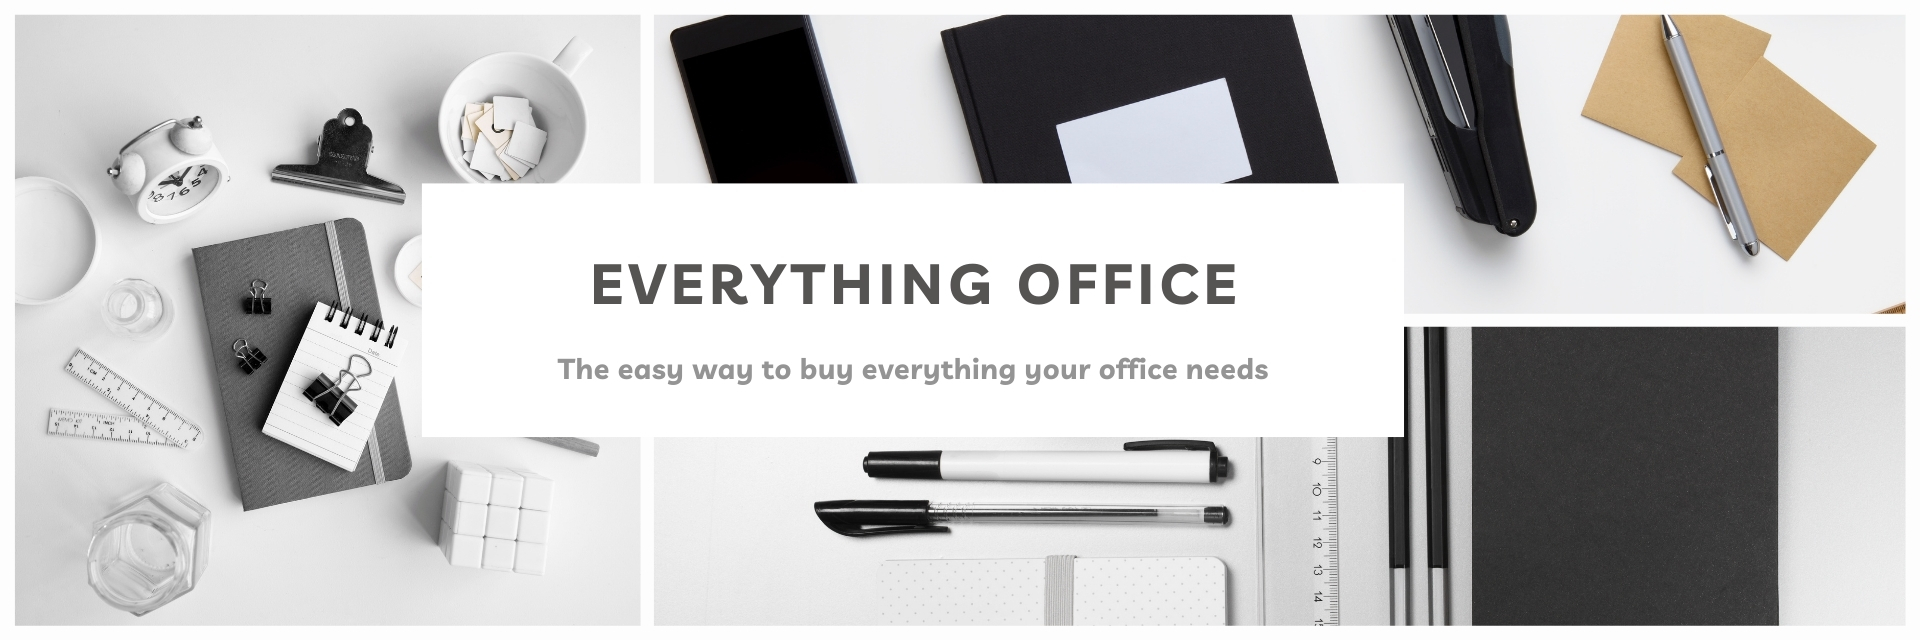 Everything Office Home Page